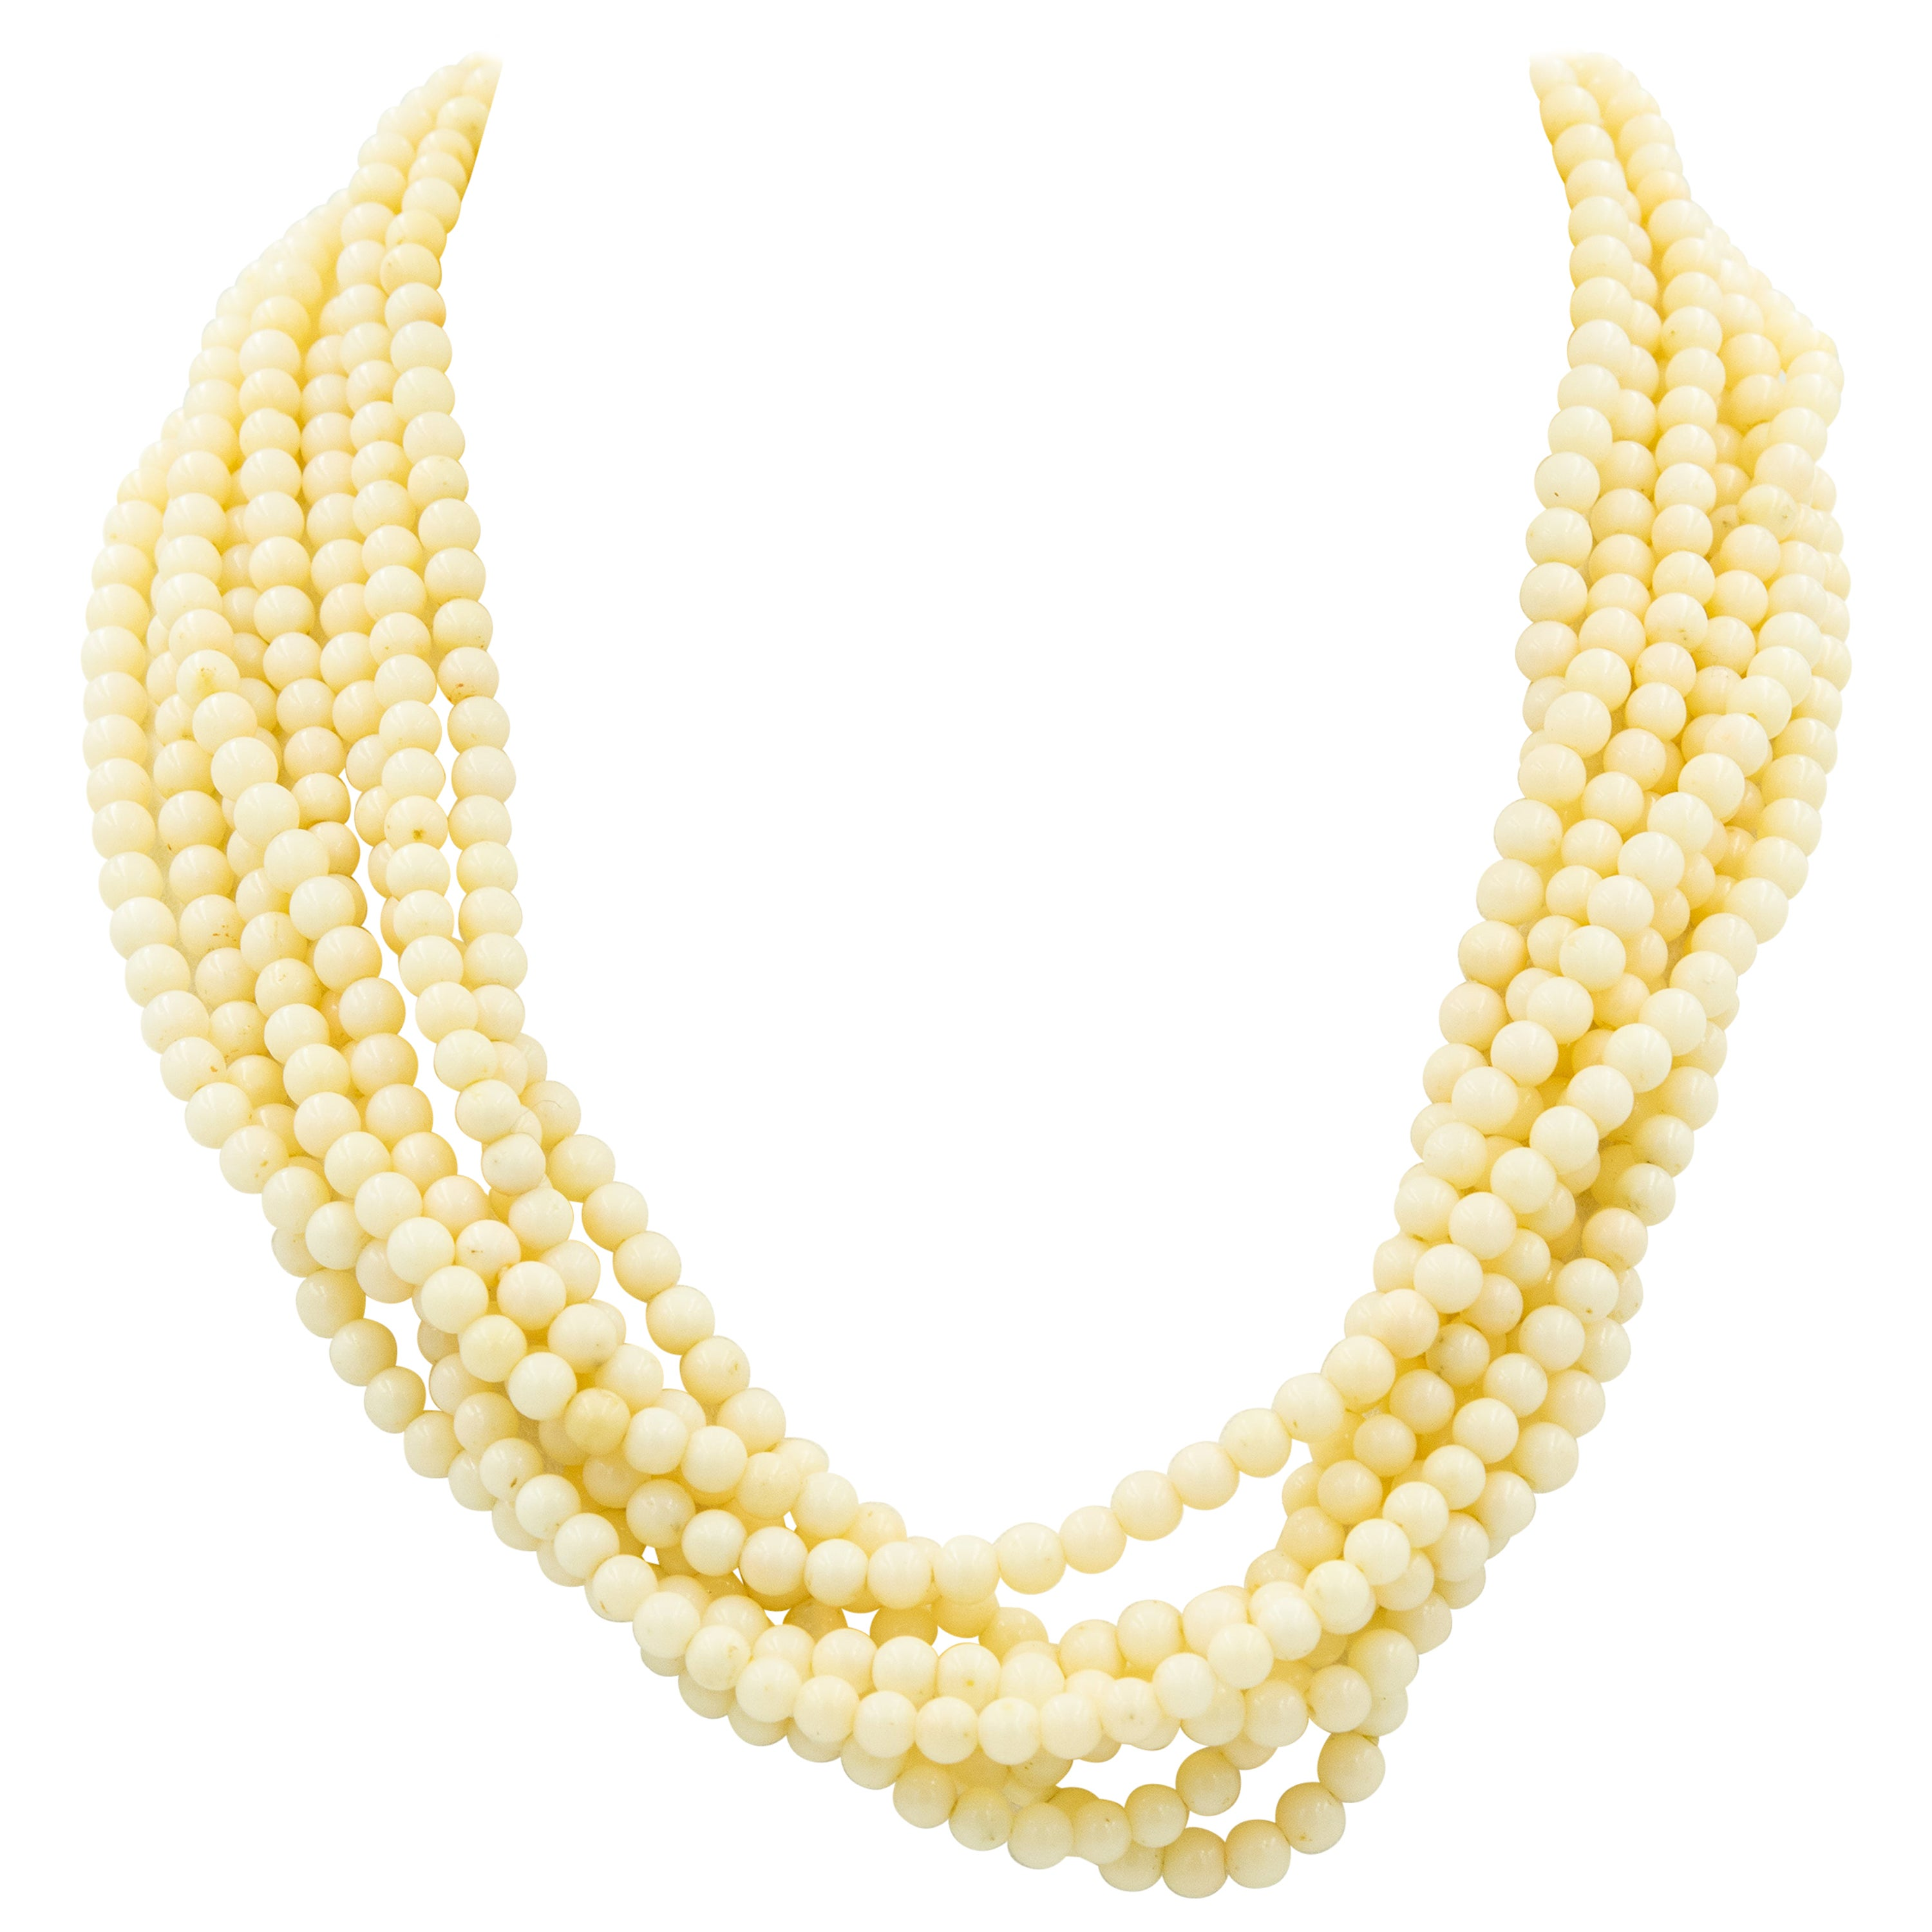 Pale 8-Strand Angel Skin Coral Bead Multi-Strand Necklace Gold Filagree Clasp